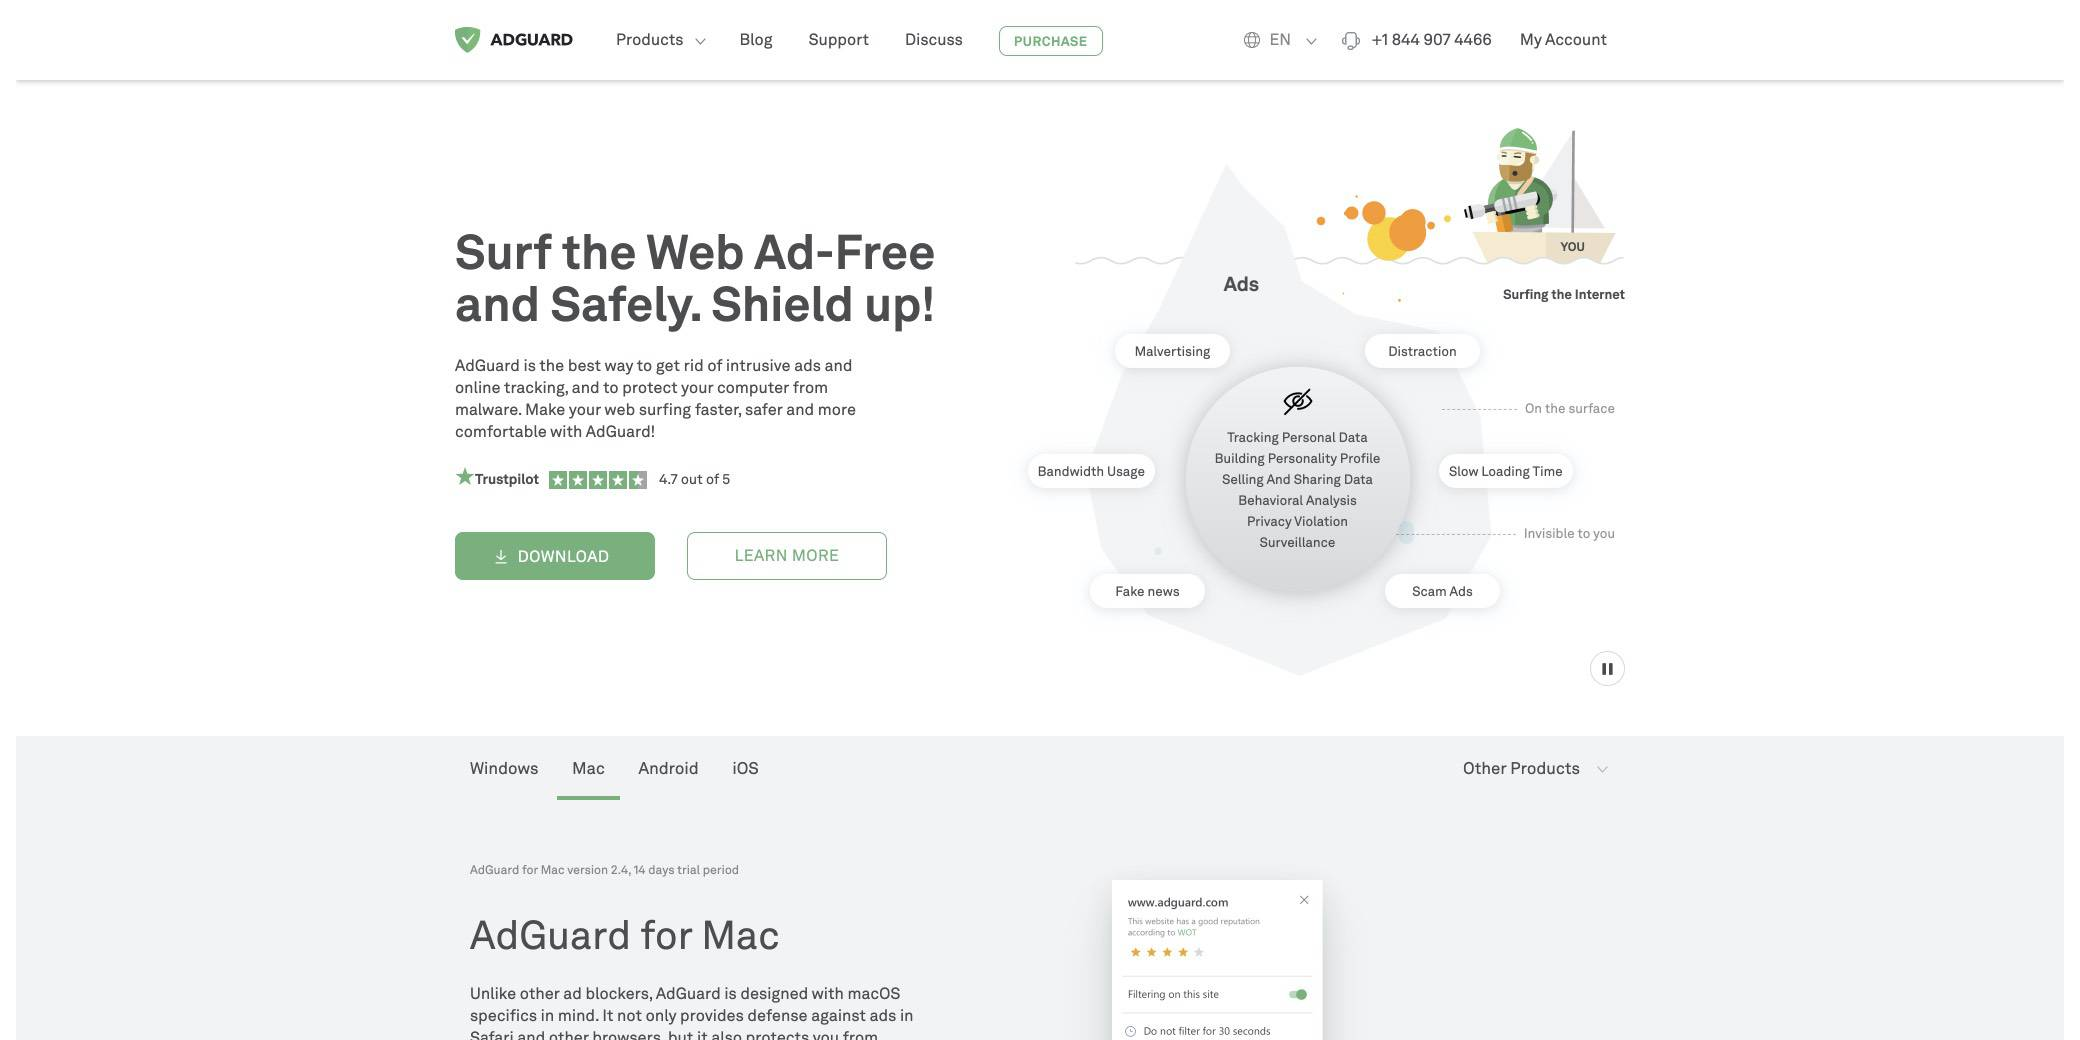 adguard screenshot